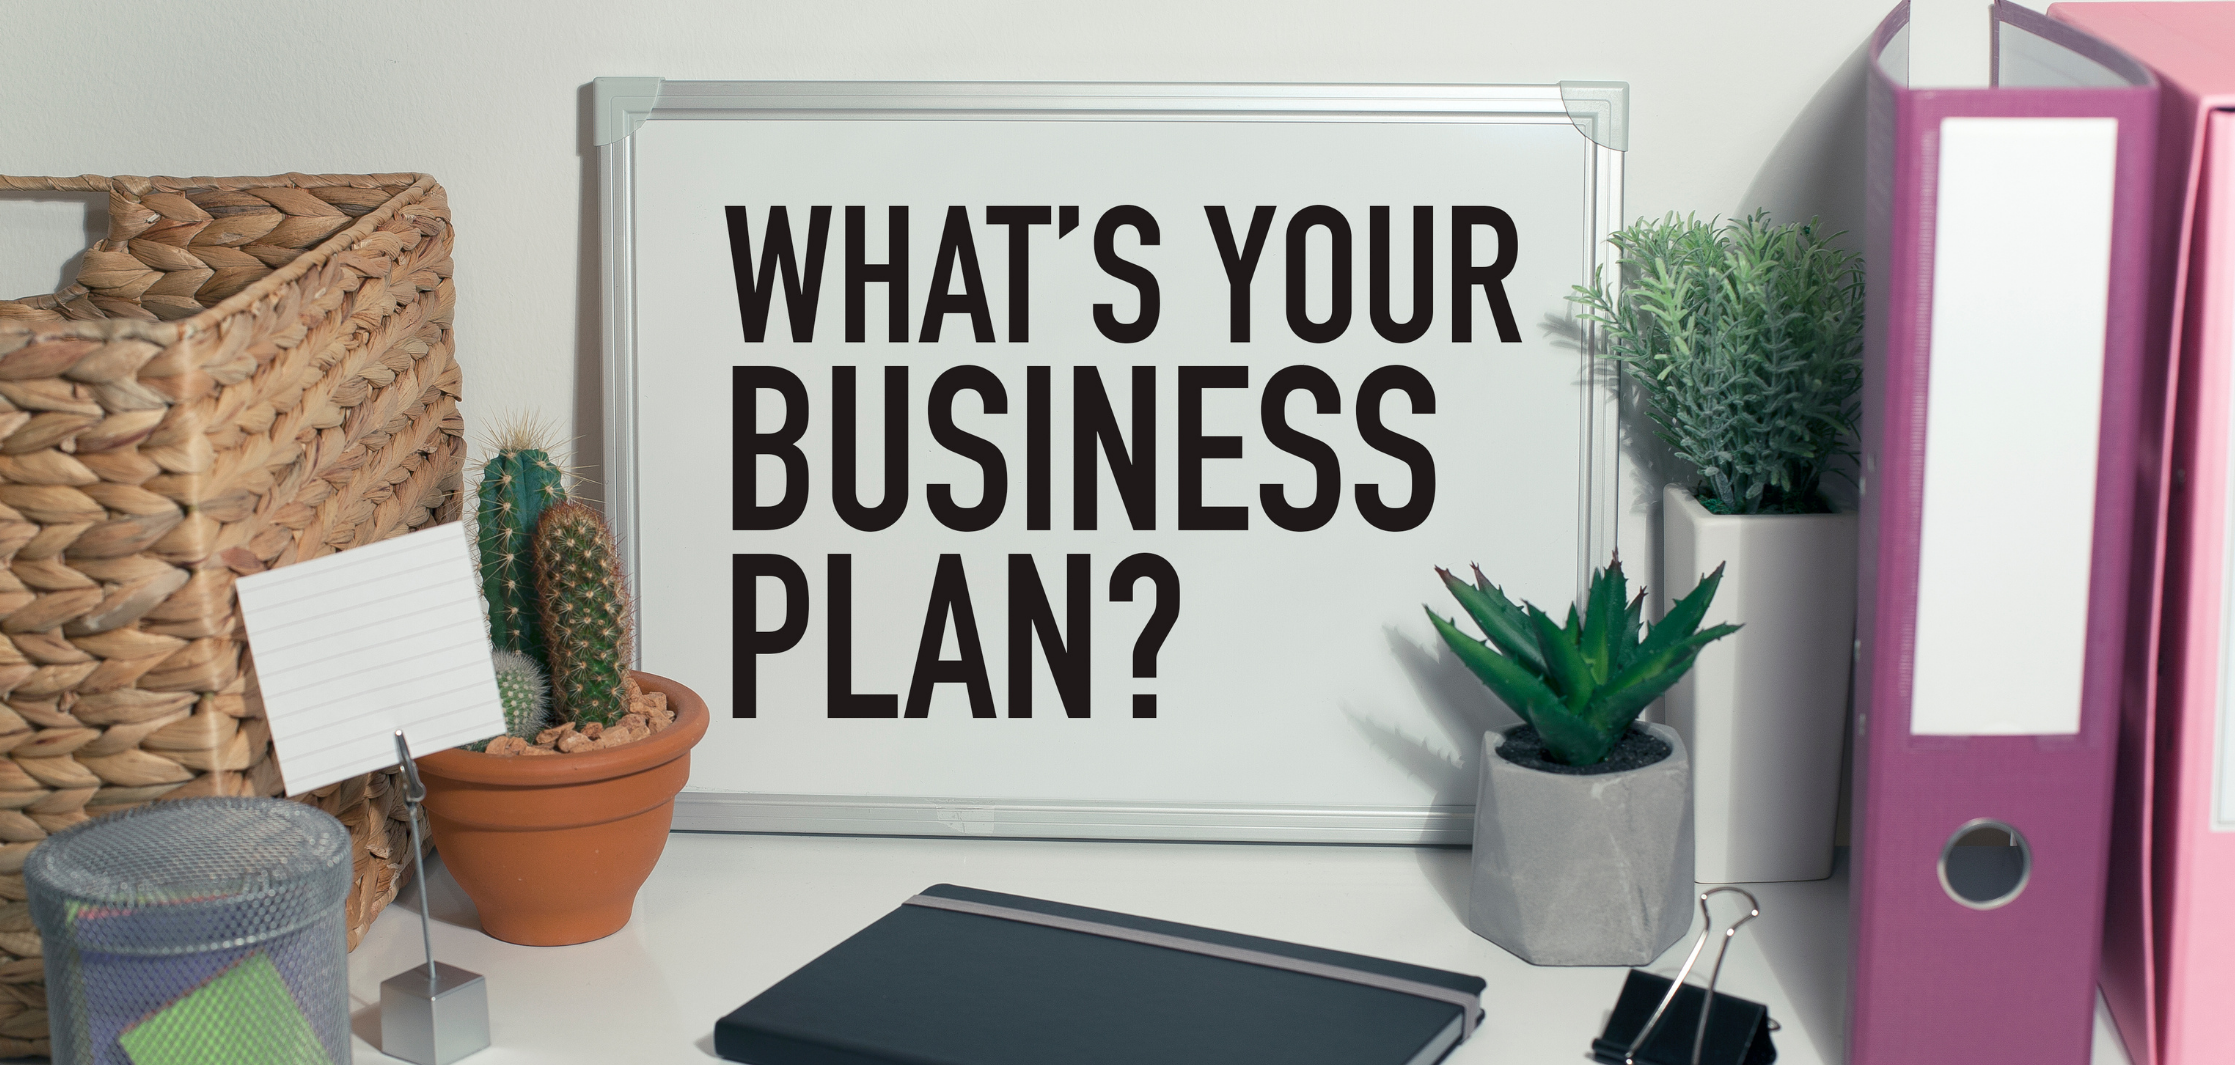 1- You have Cash or a Plan